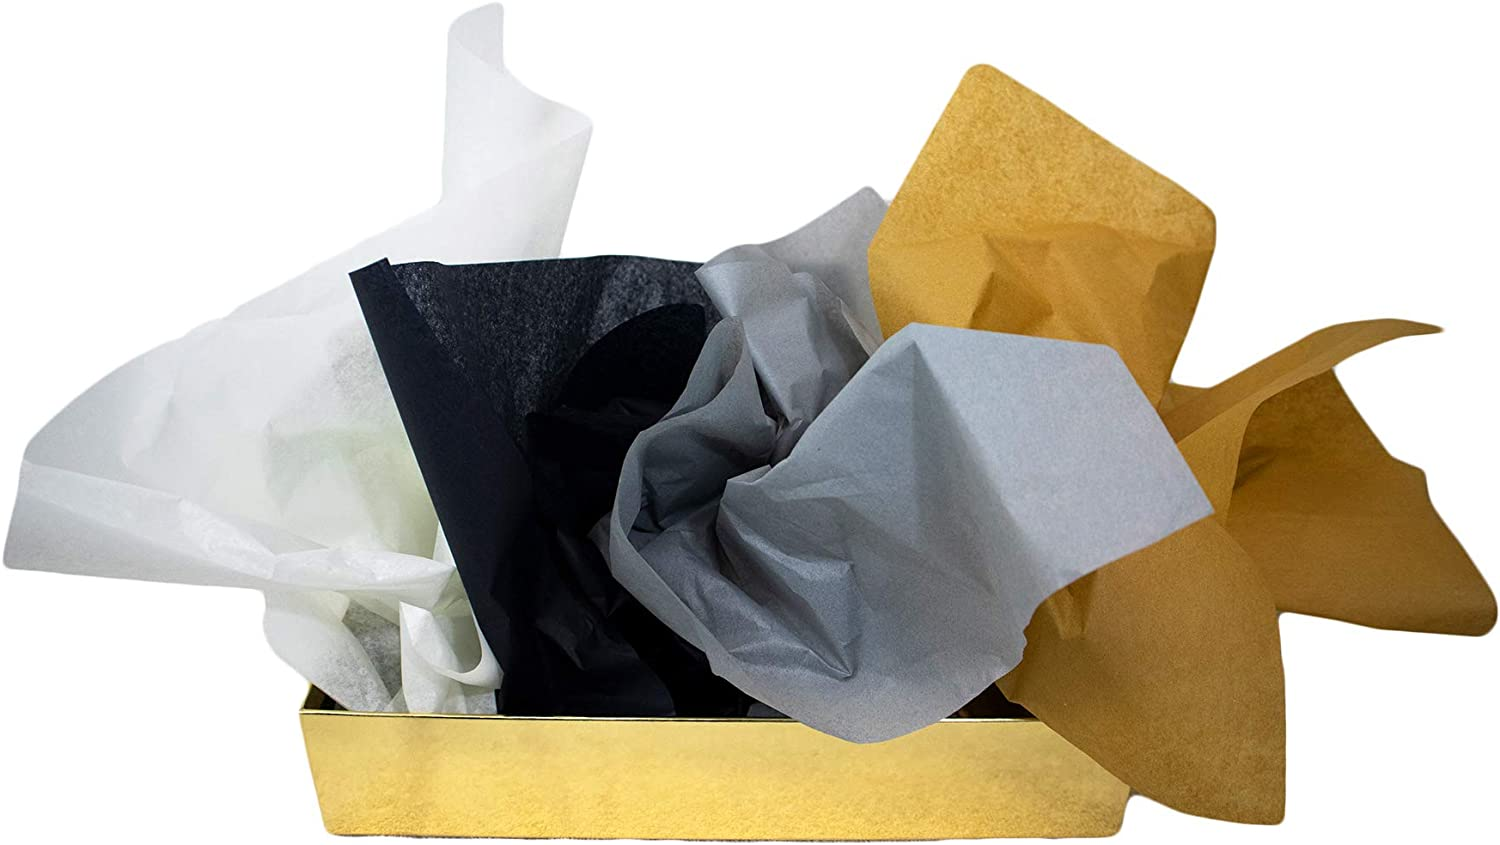 Birch, Black, Gray /& Antique Gold Art /& Crafts /& DIY Projects Made in USA Themed 48-Sheet Color Coded Tissue Paper Pack for Gift Packaging